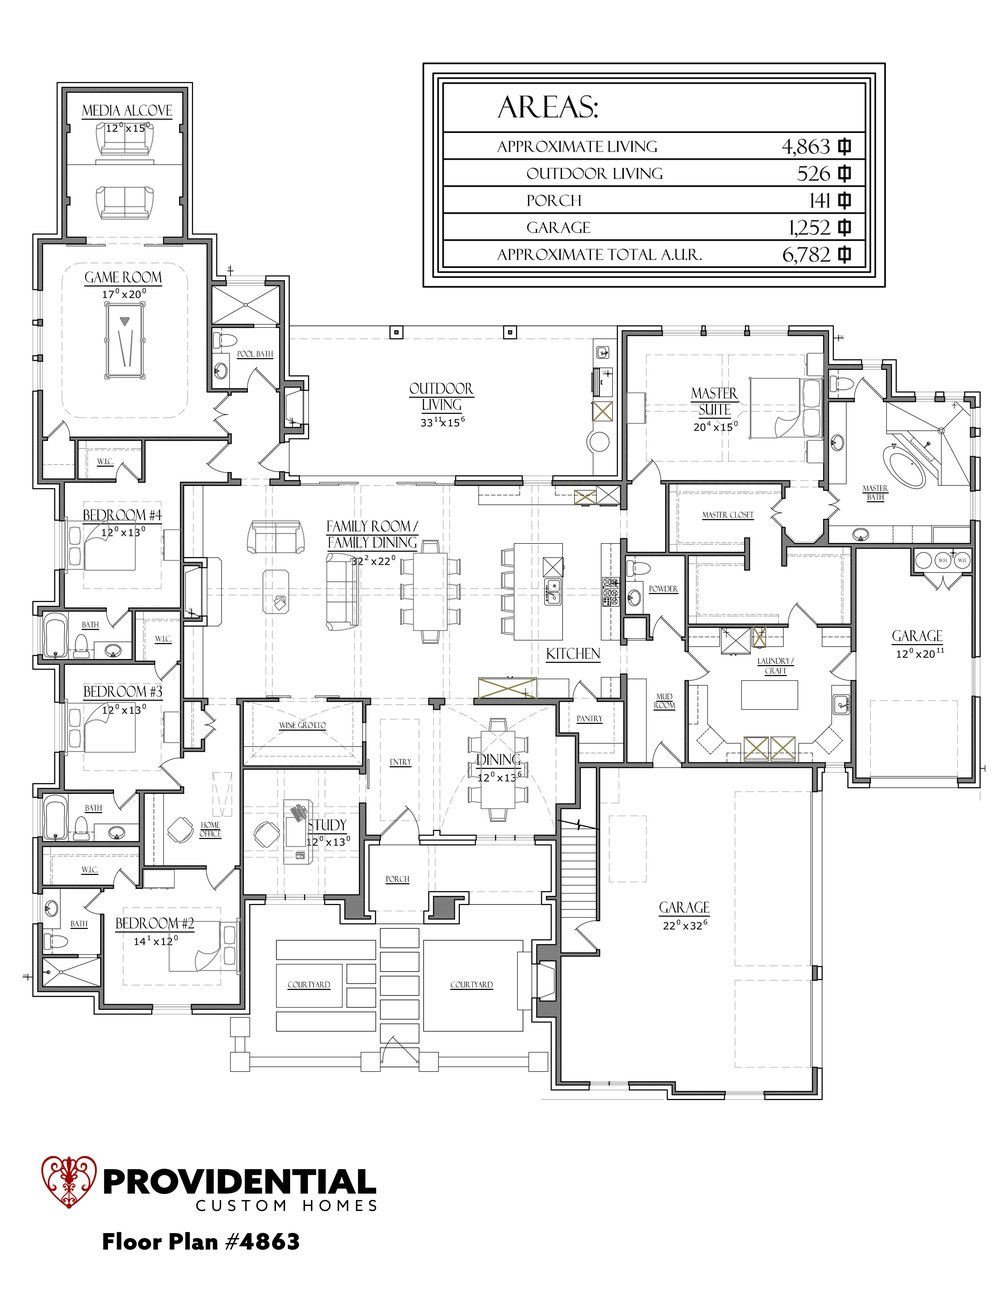 The FLOOR PLAN #4863.jpg